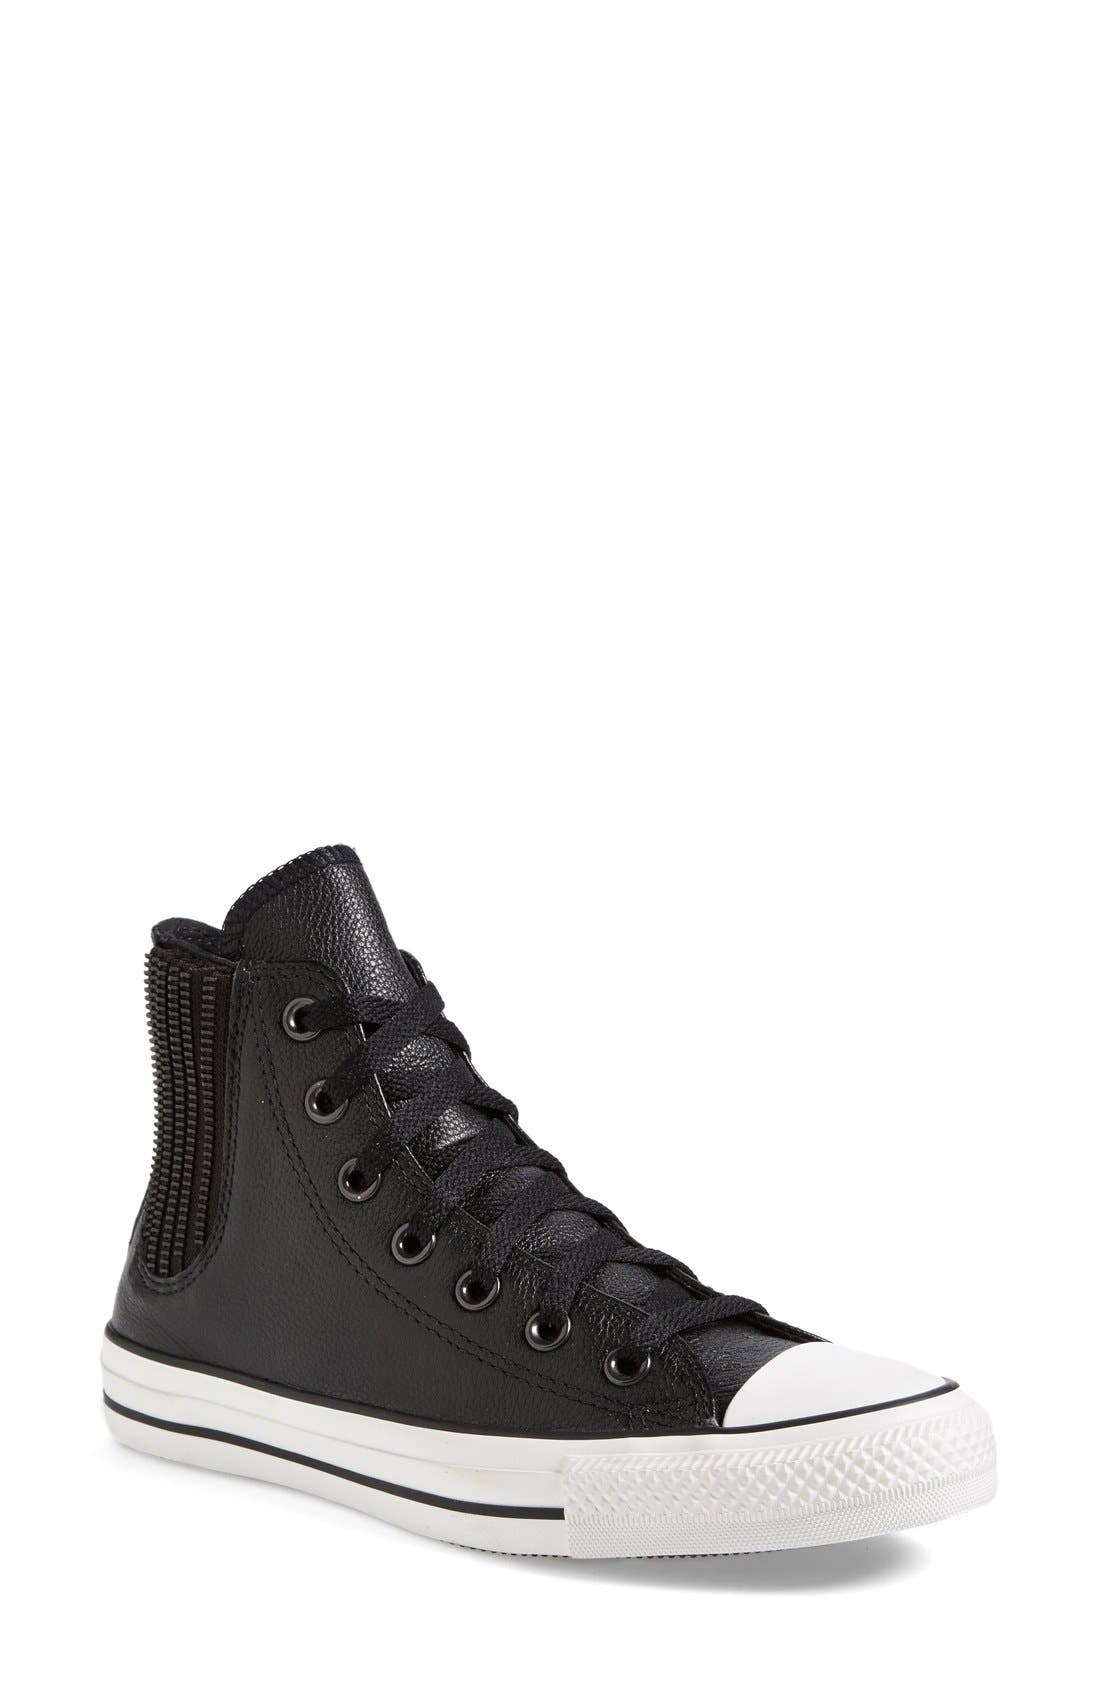 Alternate Image 1 Selected - Converse Chuck Taylor® All Star® 'Chelsee' Leather Sneaker (Women) (Nordstrom Exclusive)